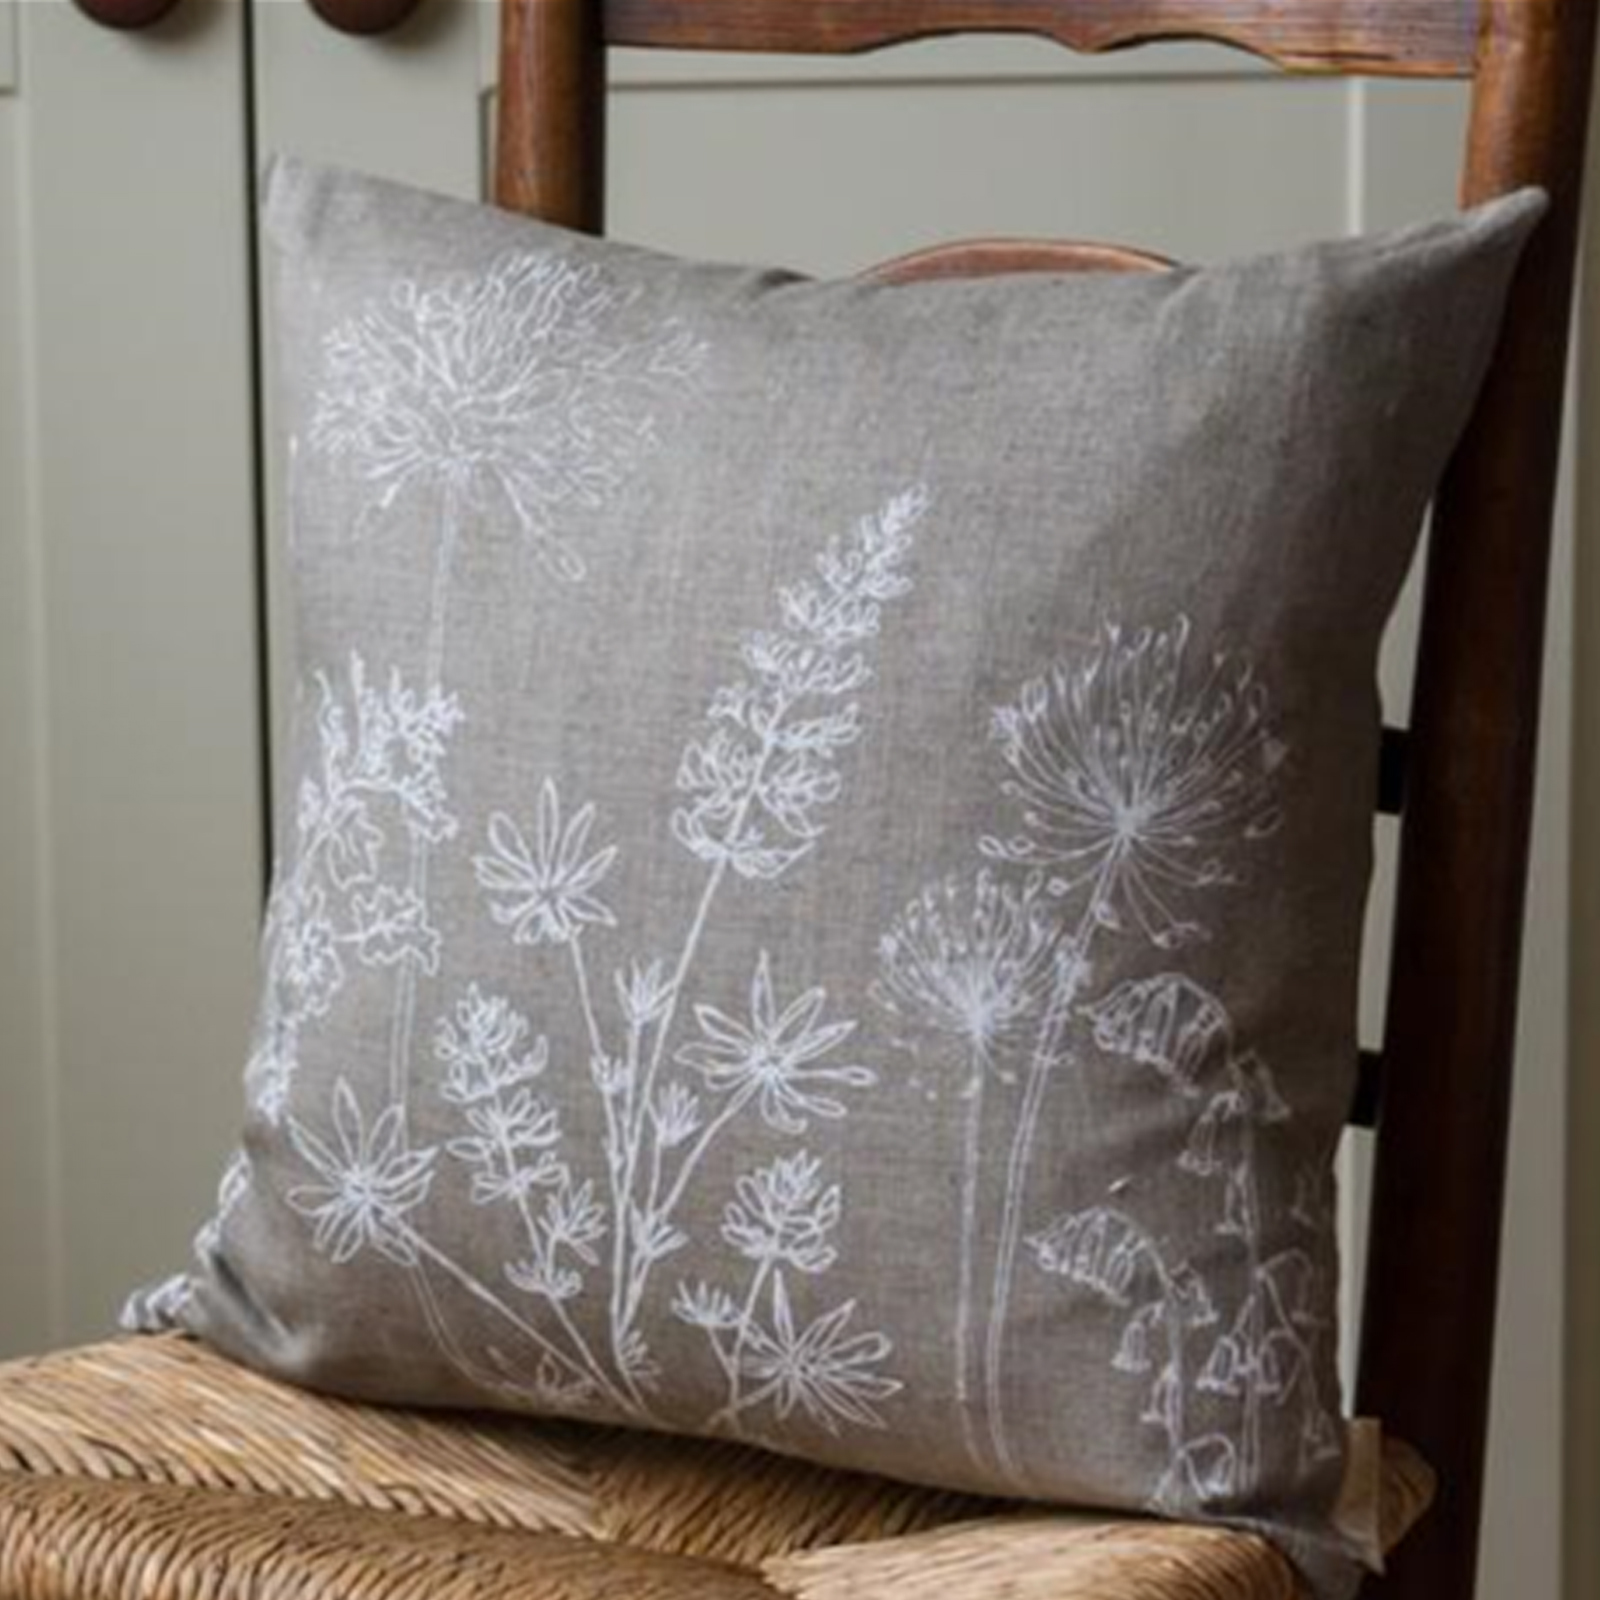 Cushion - Hand Printed Linen in Natural - Country Garden Collection by Helen Round